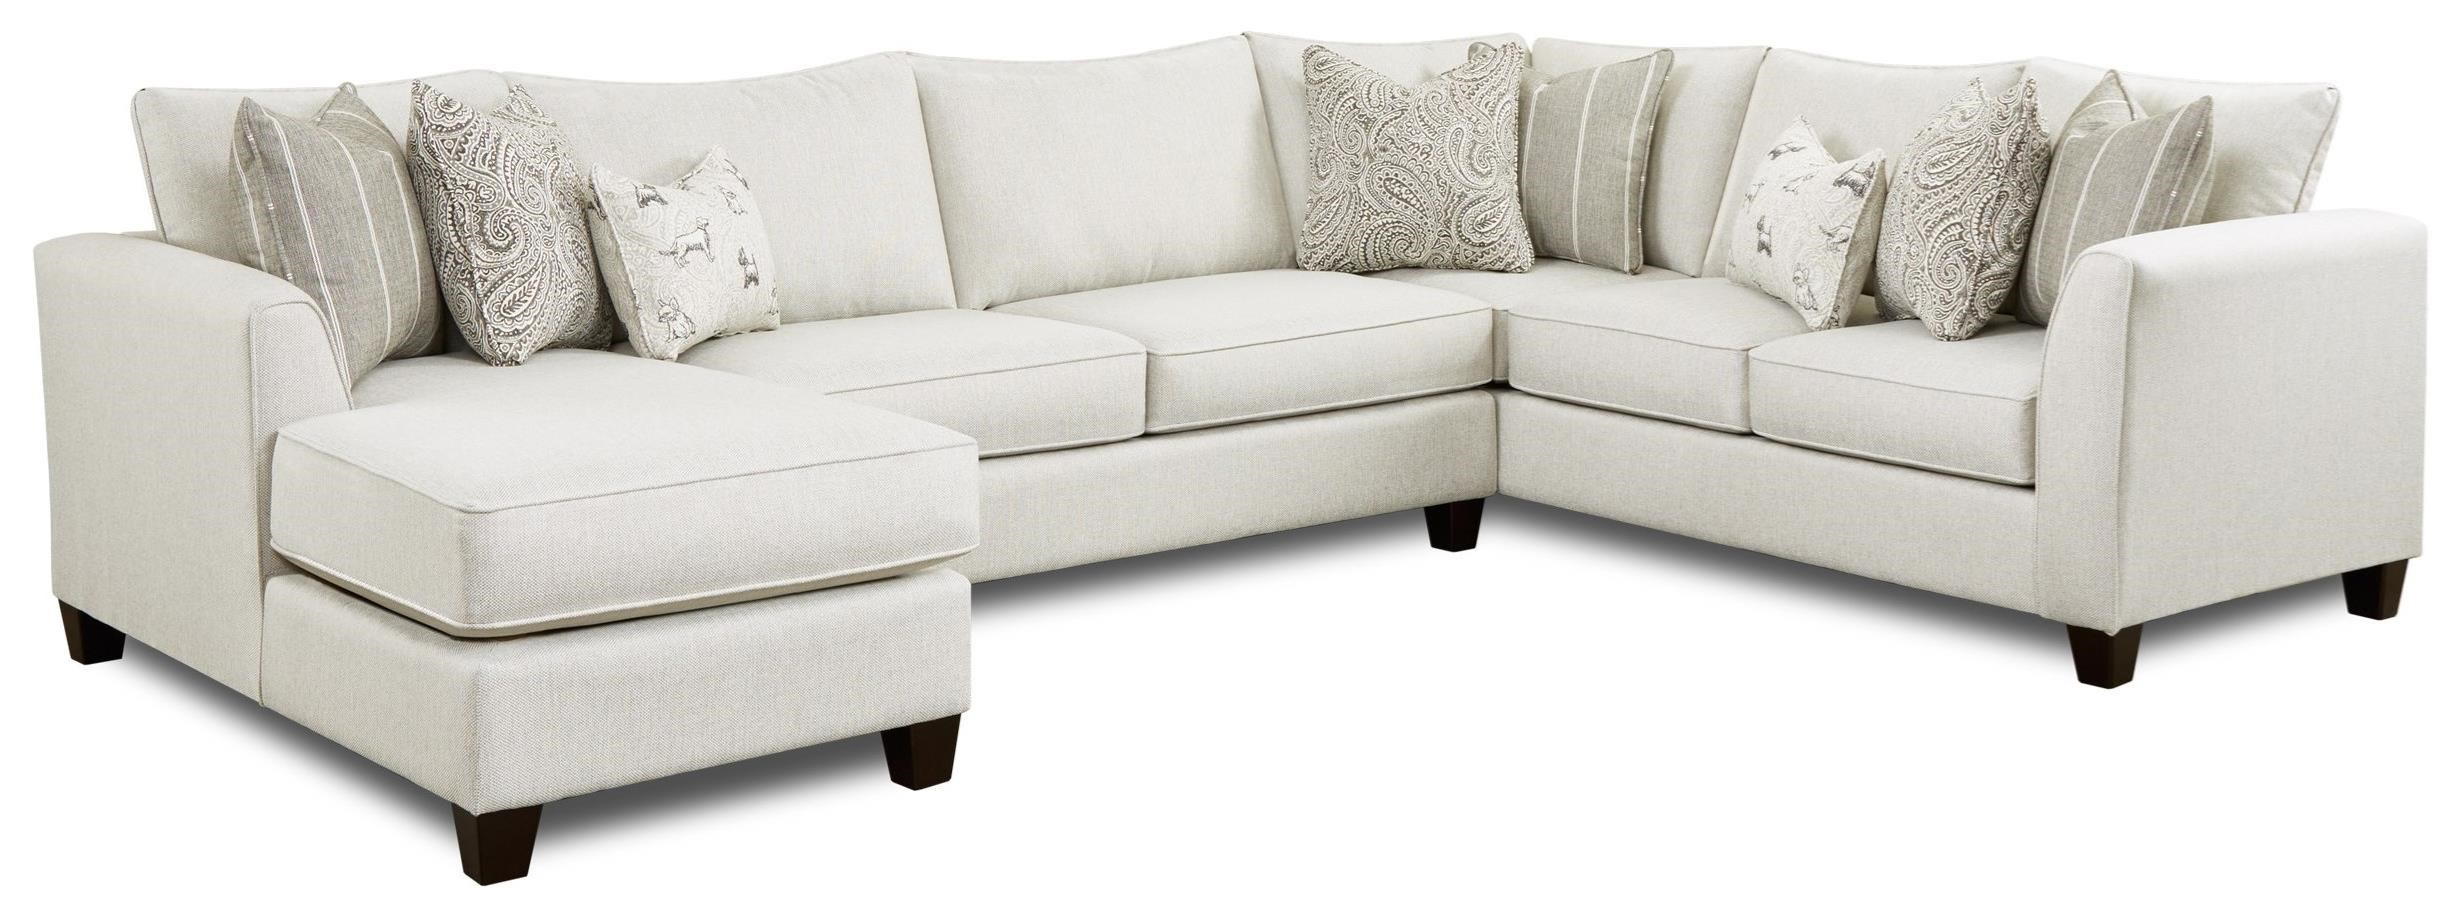 3 piece sectional with left chaise